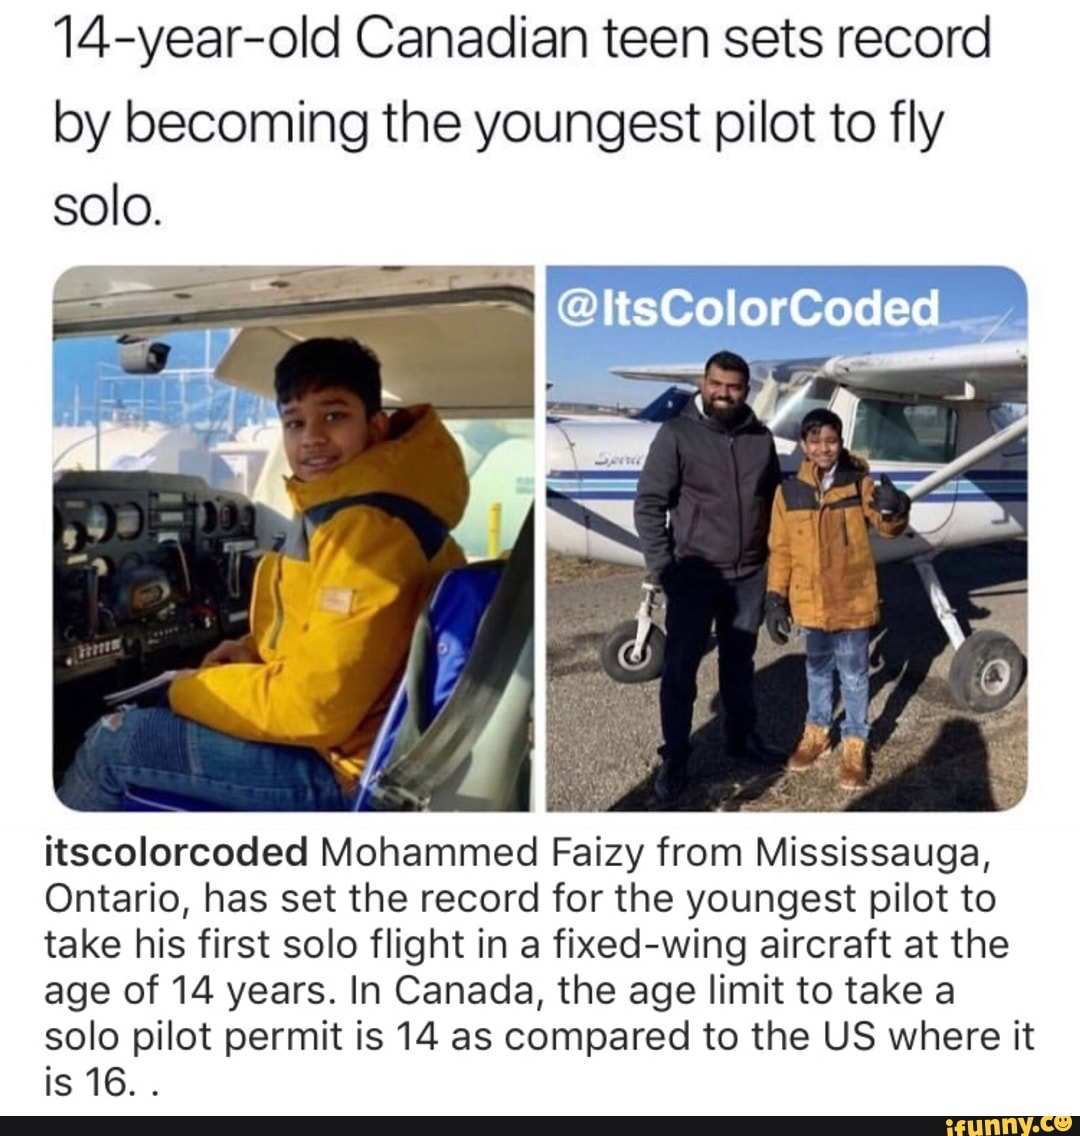 14 Year Old Canadian Teen Sets Record By Becoming The Youngest Pilot To Fly Solo Itscolorcoded Mohammed Faizy From Mississauga Ontario Has Set The Record For The Youngest Pilot To Take His First Solo